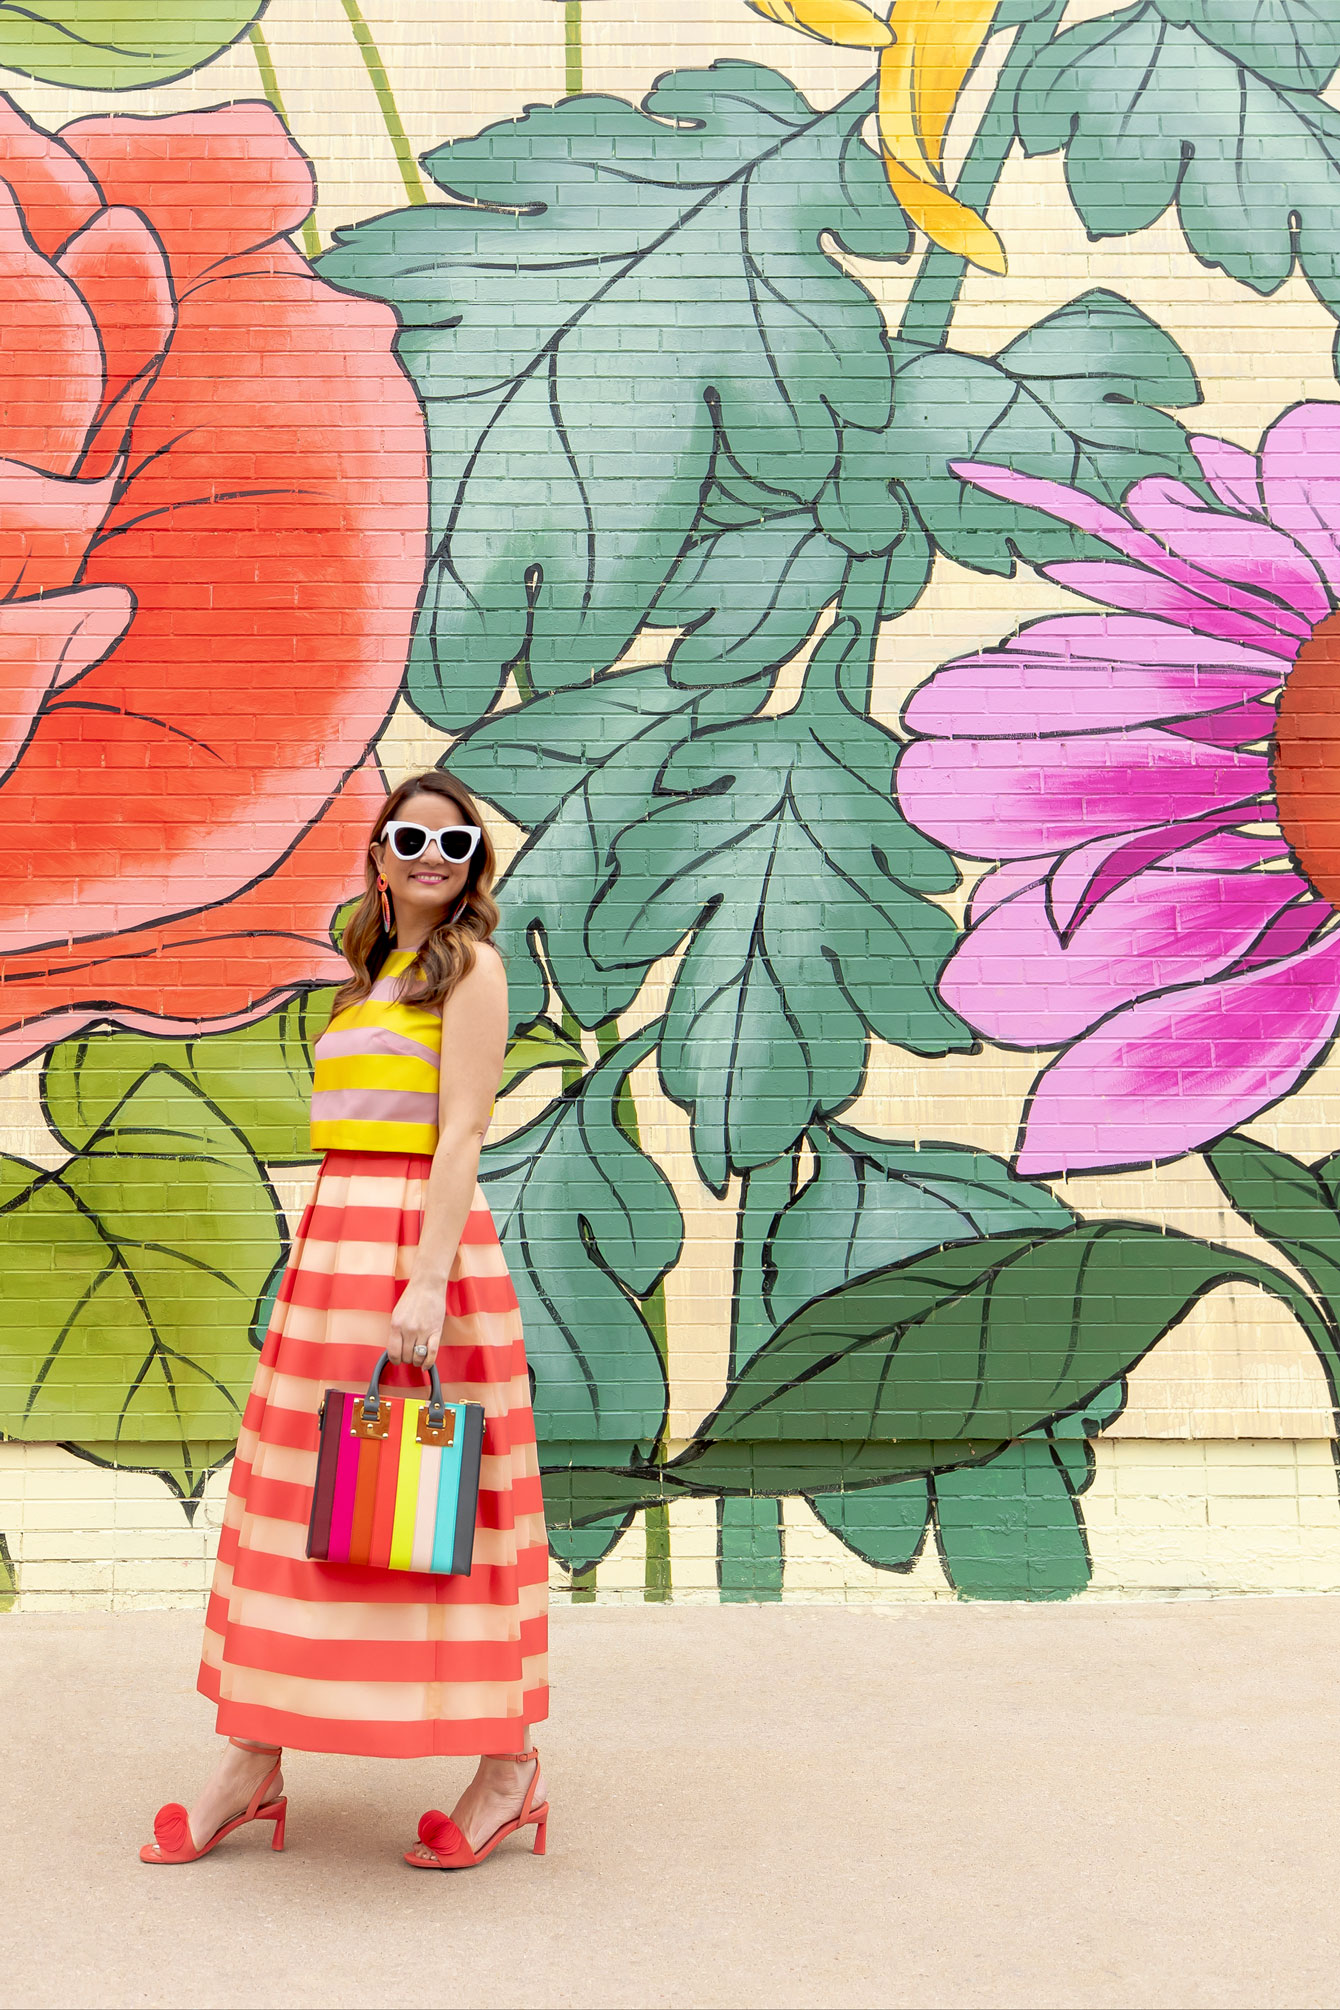 Floral Mural Chicago 0uizi